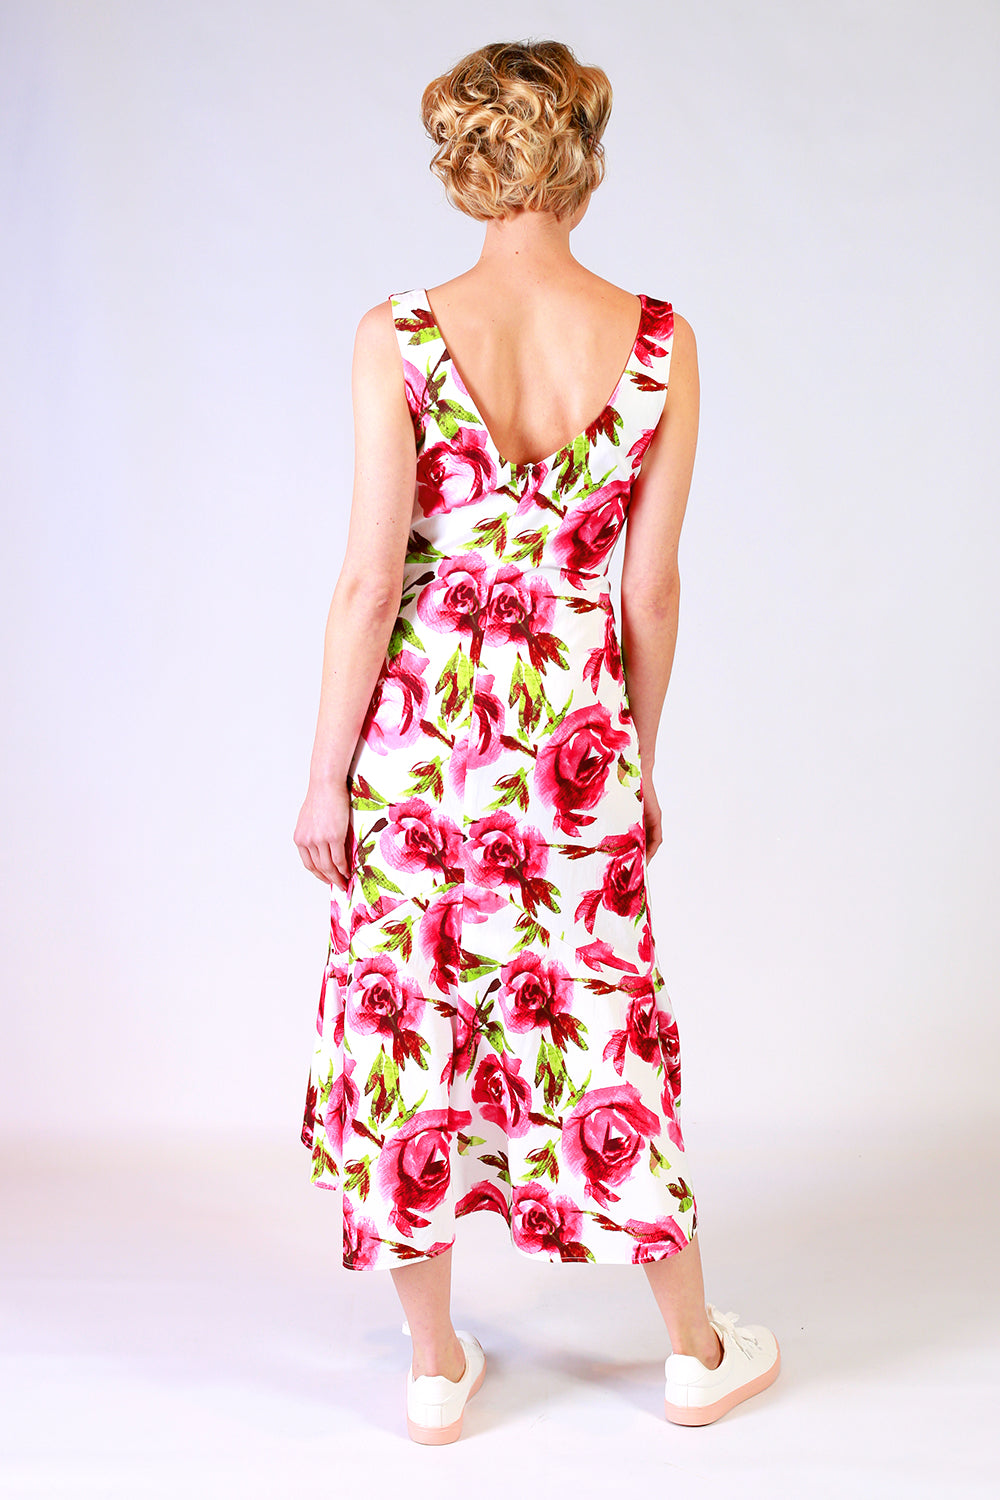 Coco Mina Dress | Mid Length Dresses NZ | | Occasion Dresses | Formal Dresses NZ | Evening Dresses NZ | Designer Fashion NZ | Floral Dresses NZ